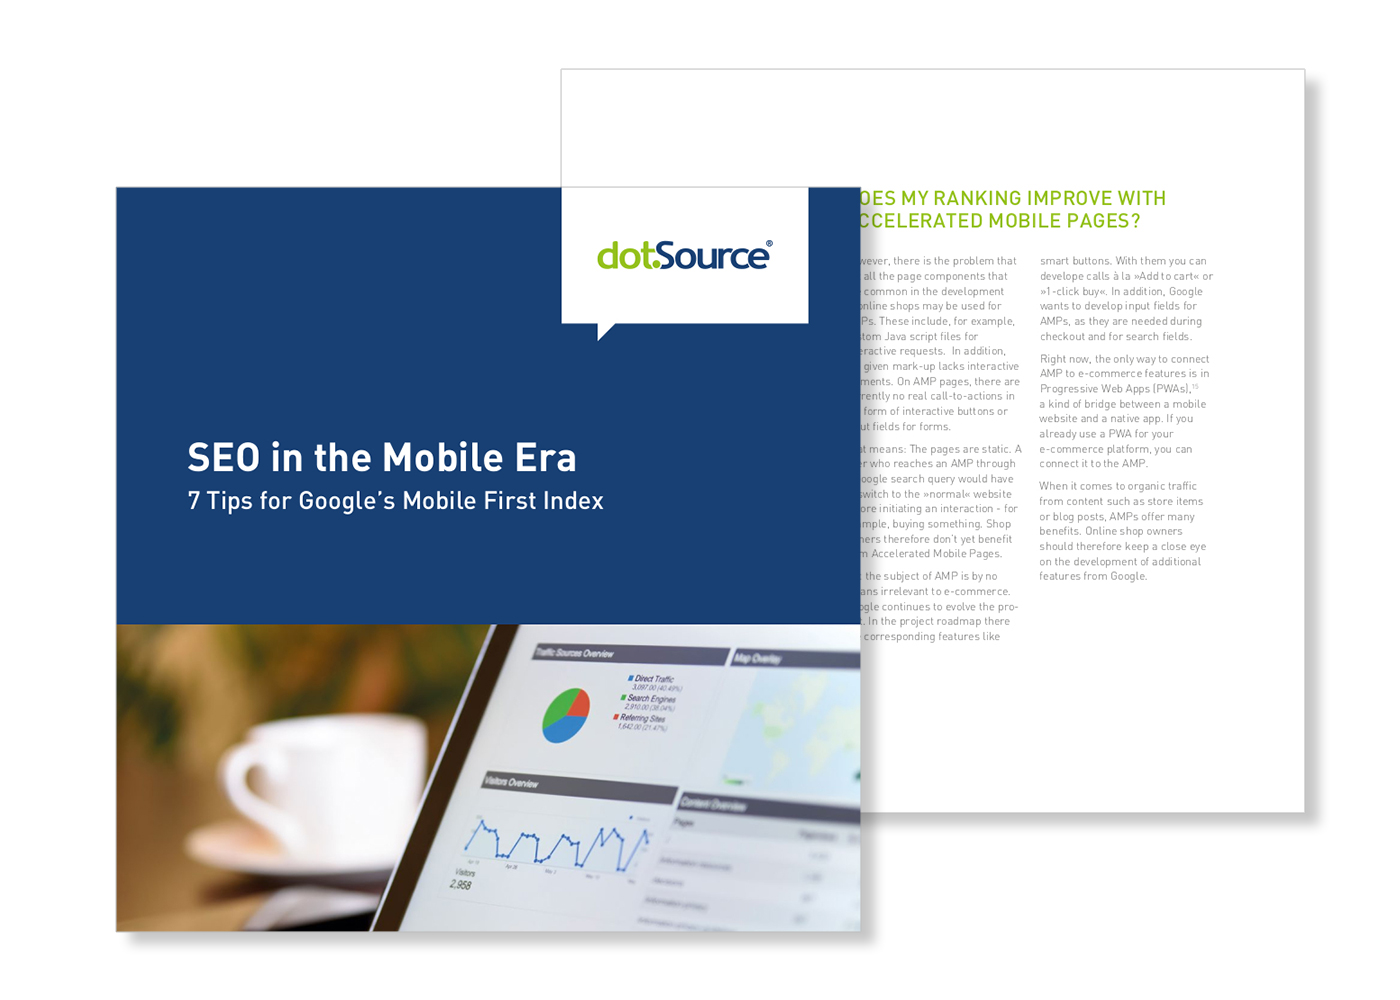 SEO in the Mobile Era: 7 Tips for Google's Mobile First Index [Updated white paper]